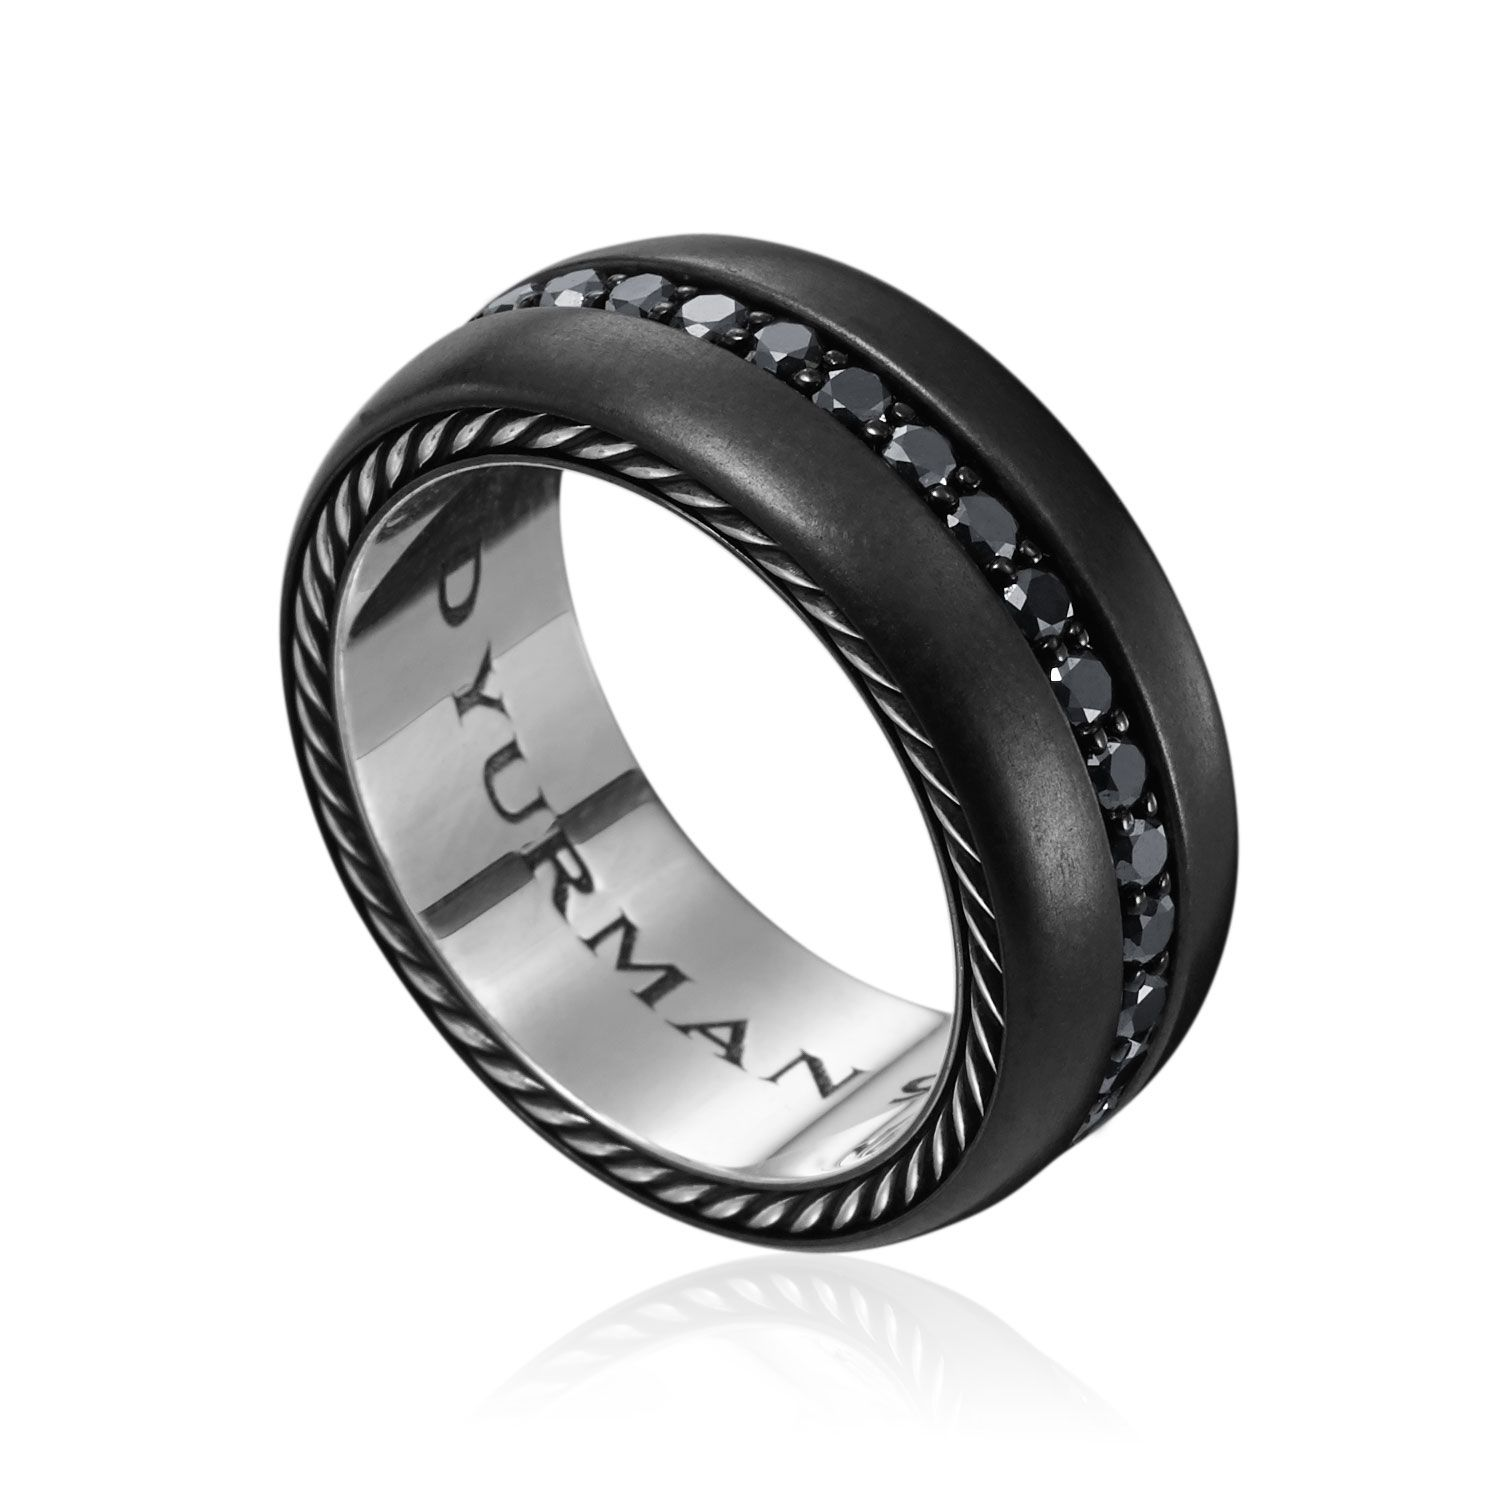 Men's Diamond Rings for More Luxury & Elegance Black